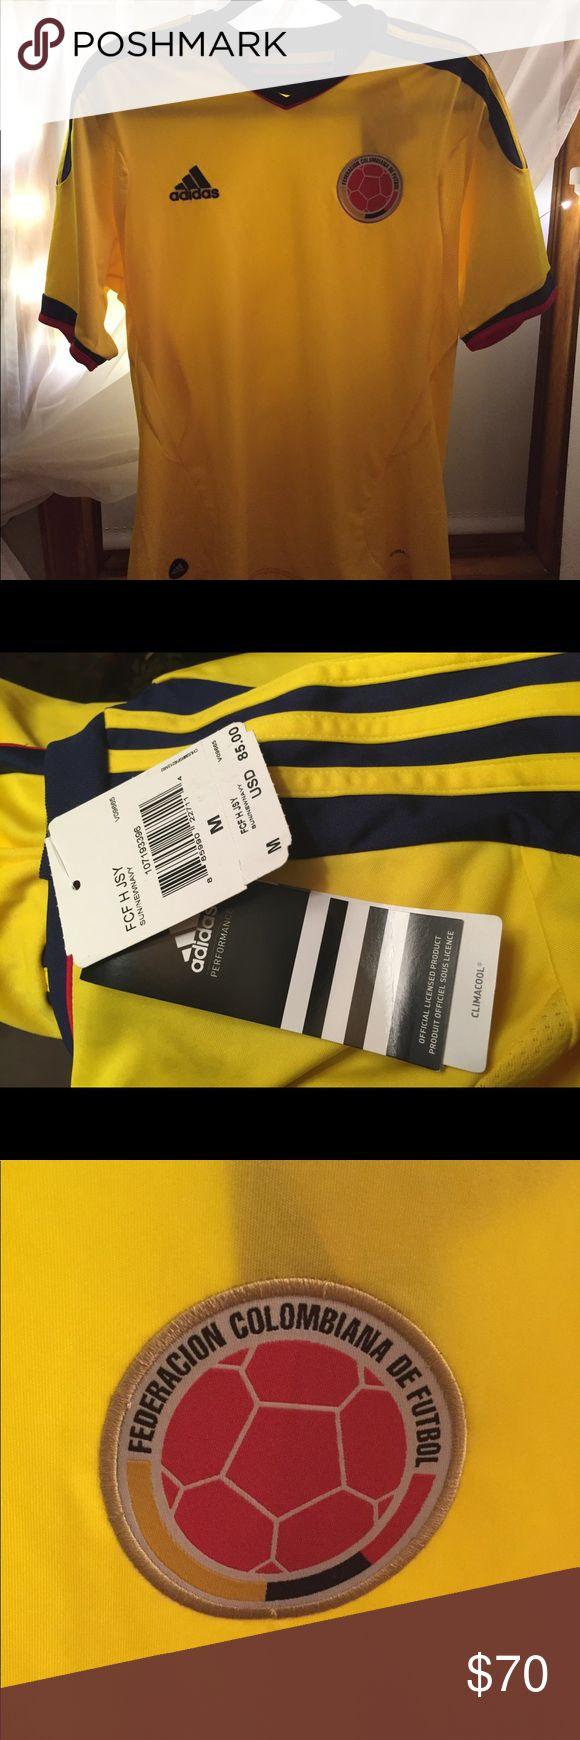 Men's Colombia soccer jersey Adidas NEW with tags Men's medium soccer jersey. Adidas. Colombia. New with tags (seen in photo). adidas Tops Tees - Short Sleeve